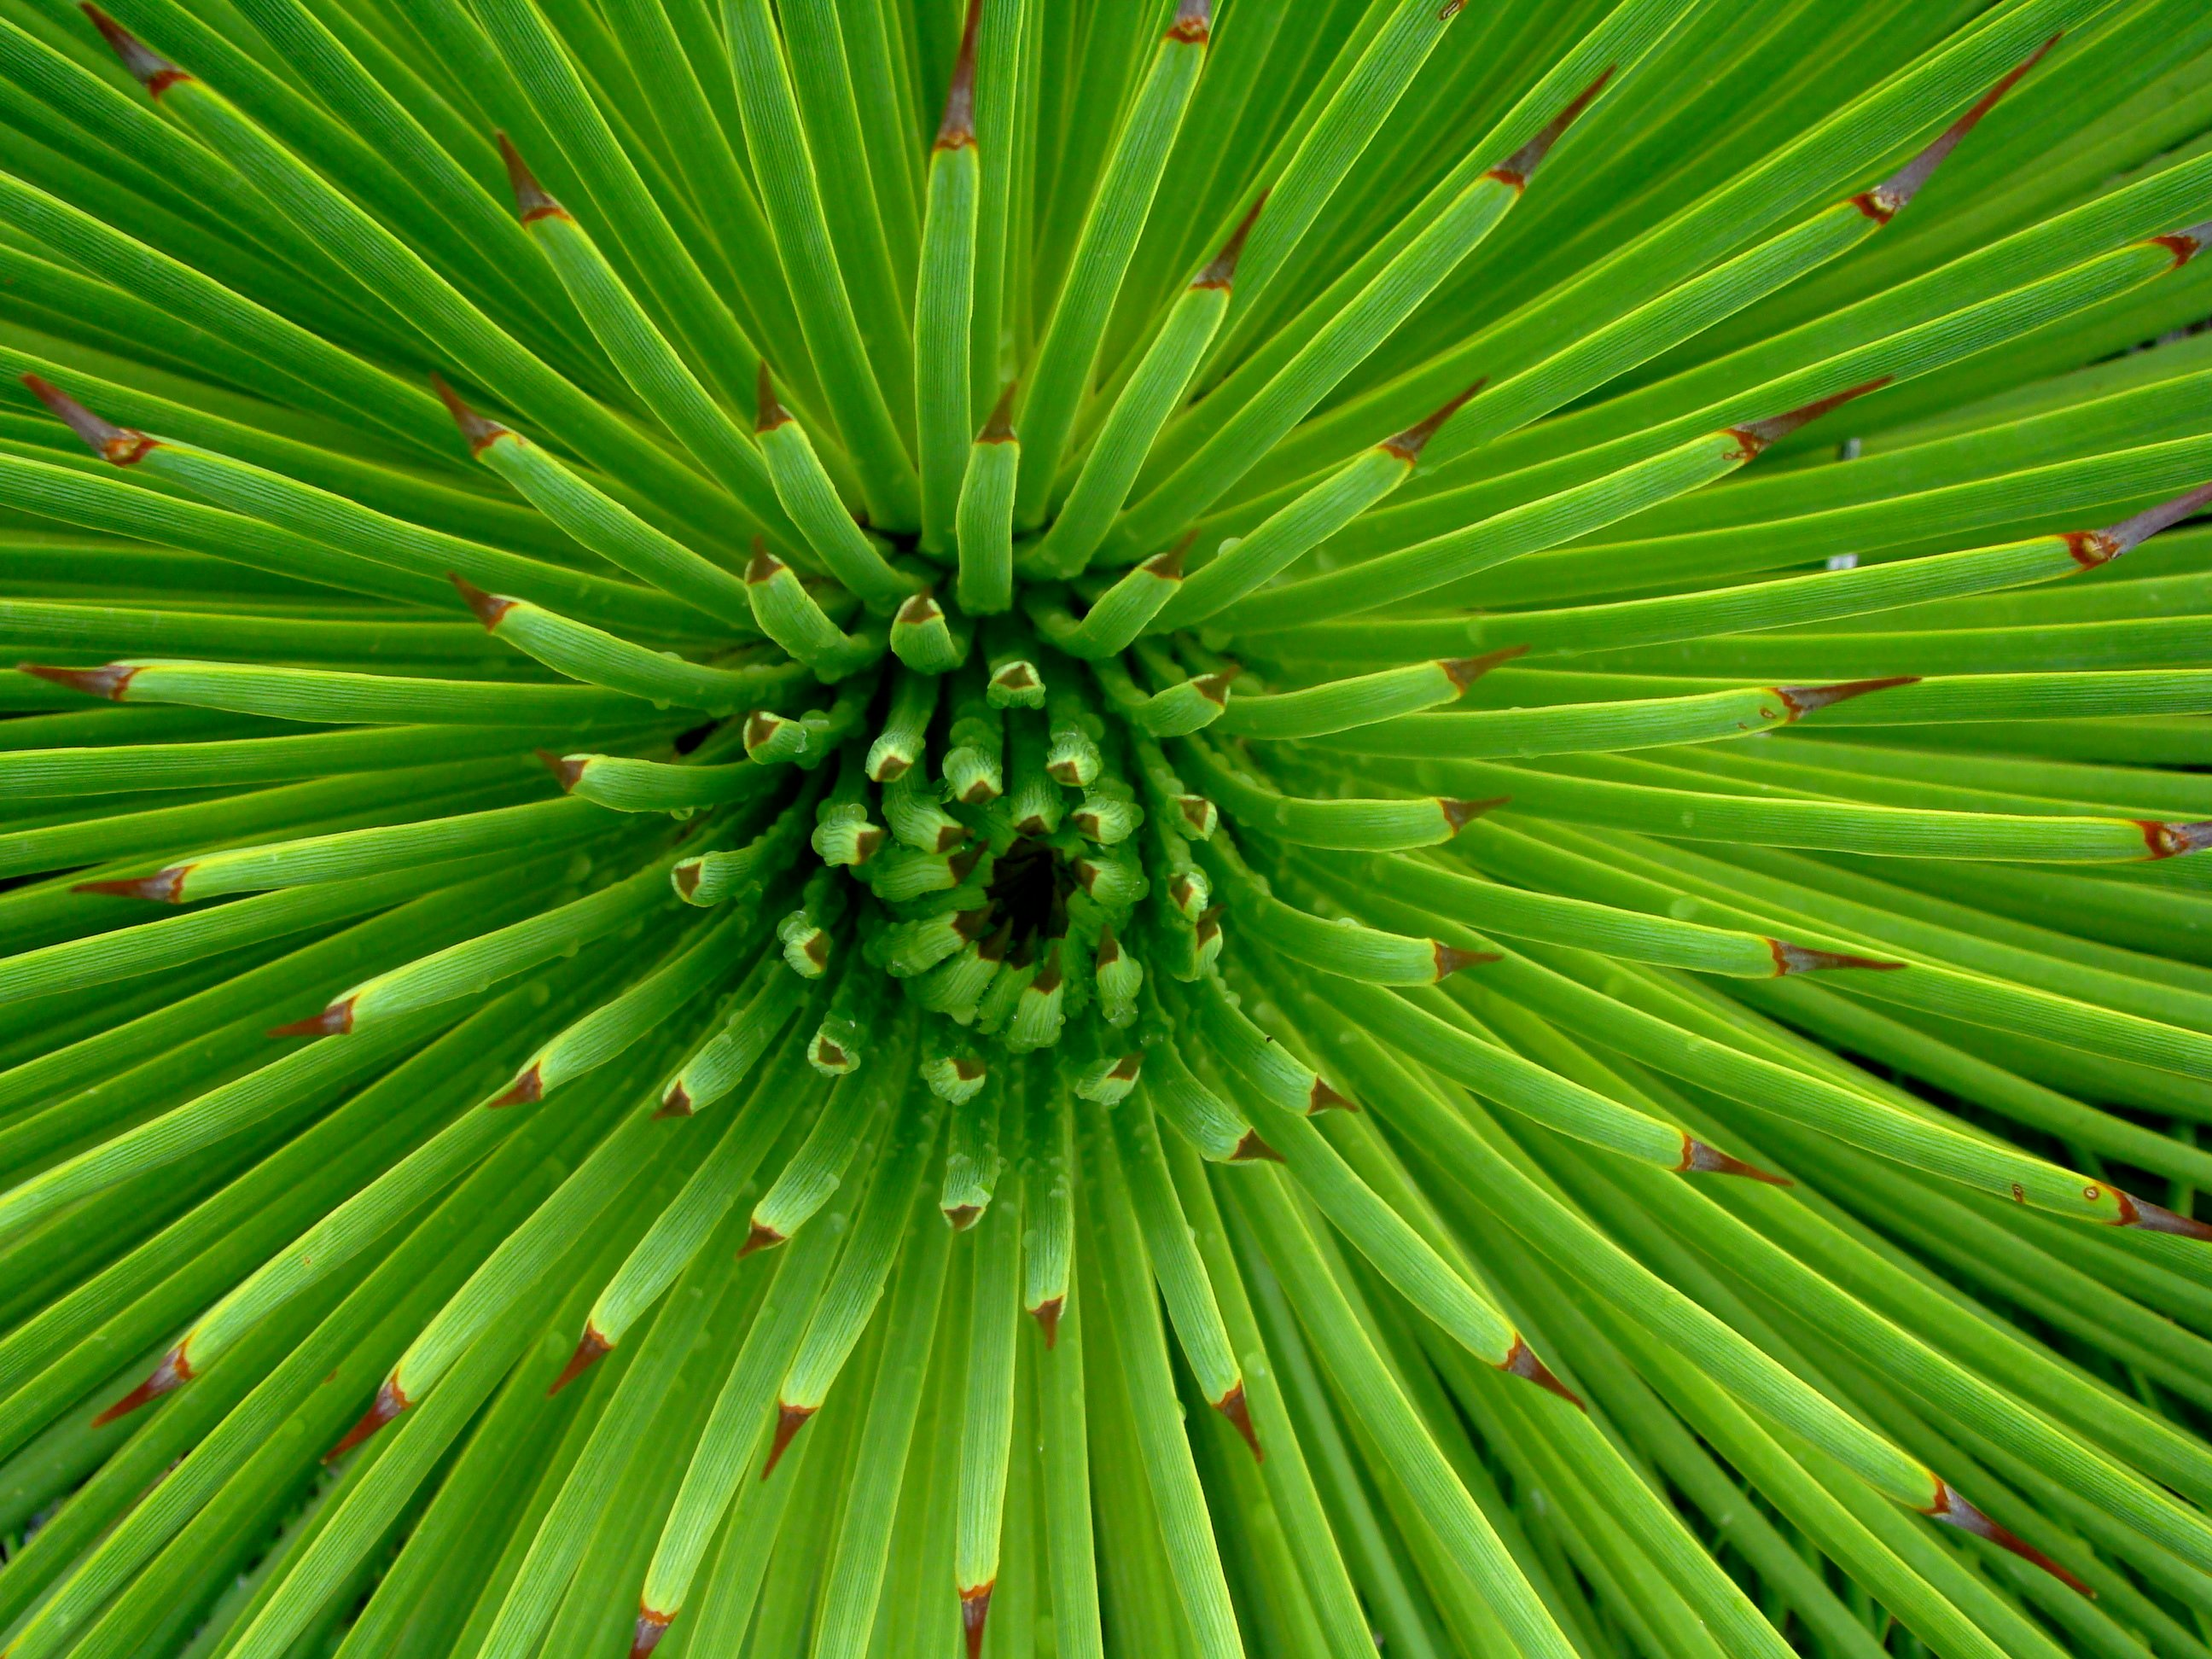 blogspotcom201209green flower wallpaperhtml 2592x1944